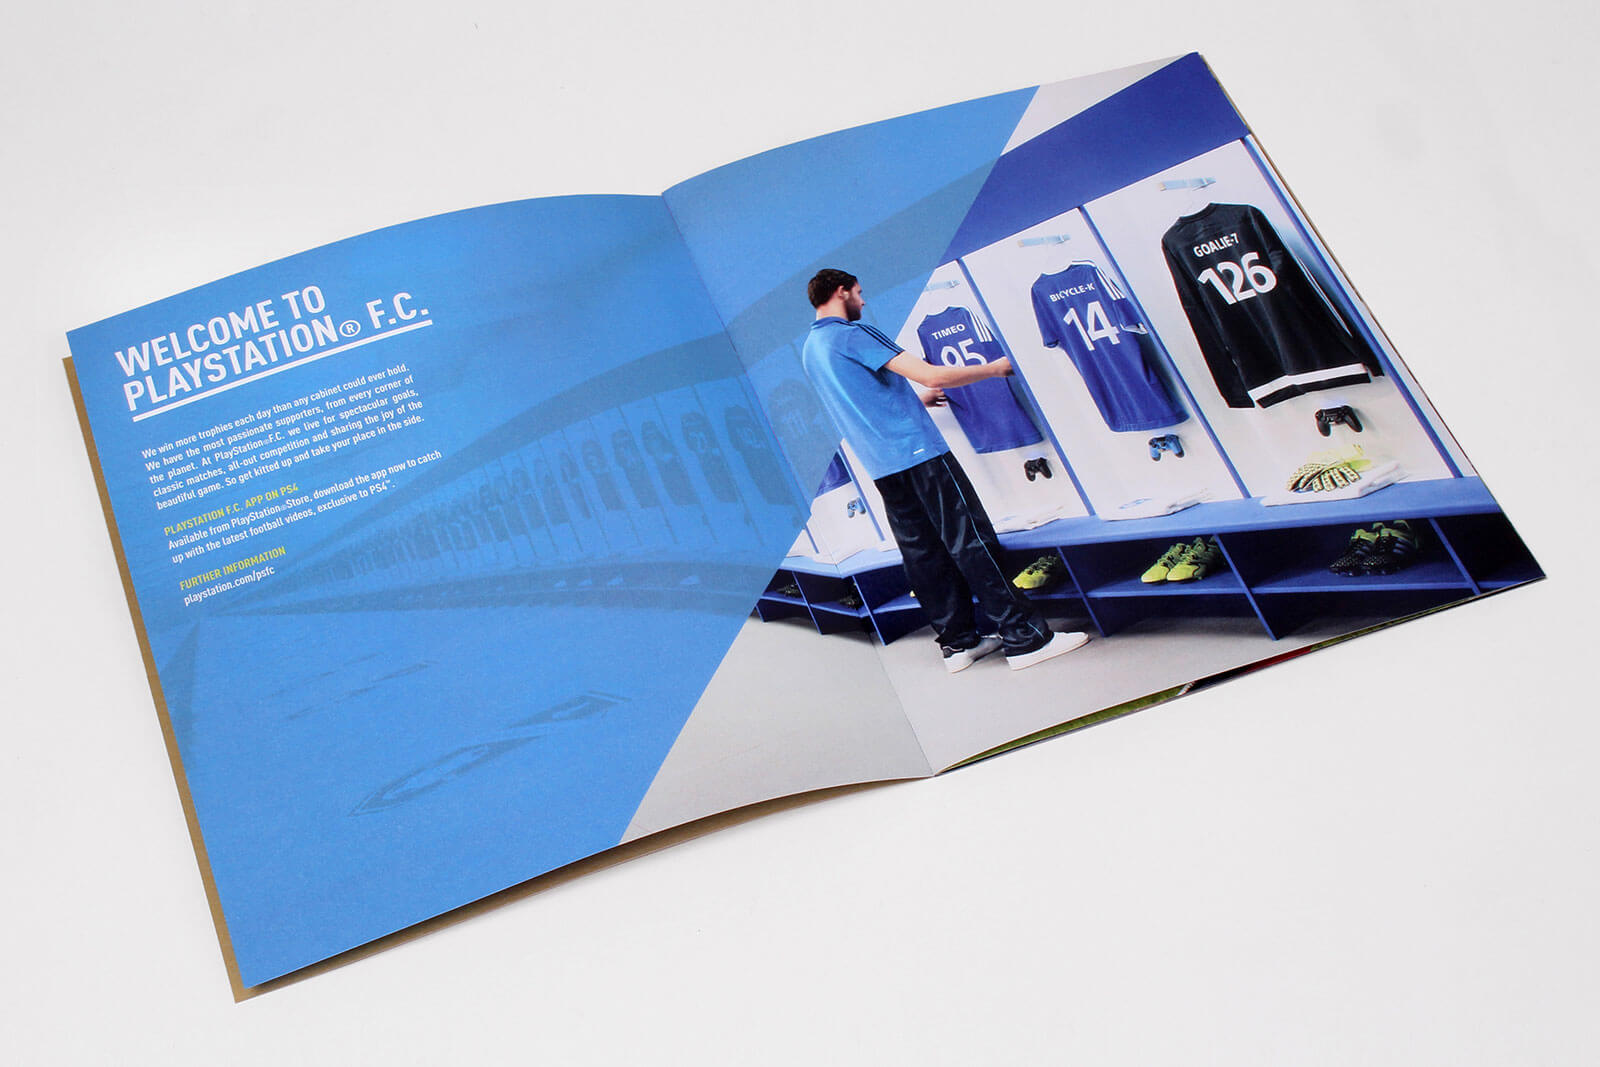 FIFA 18: Media Kit - Booklet